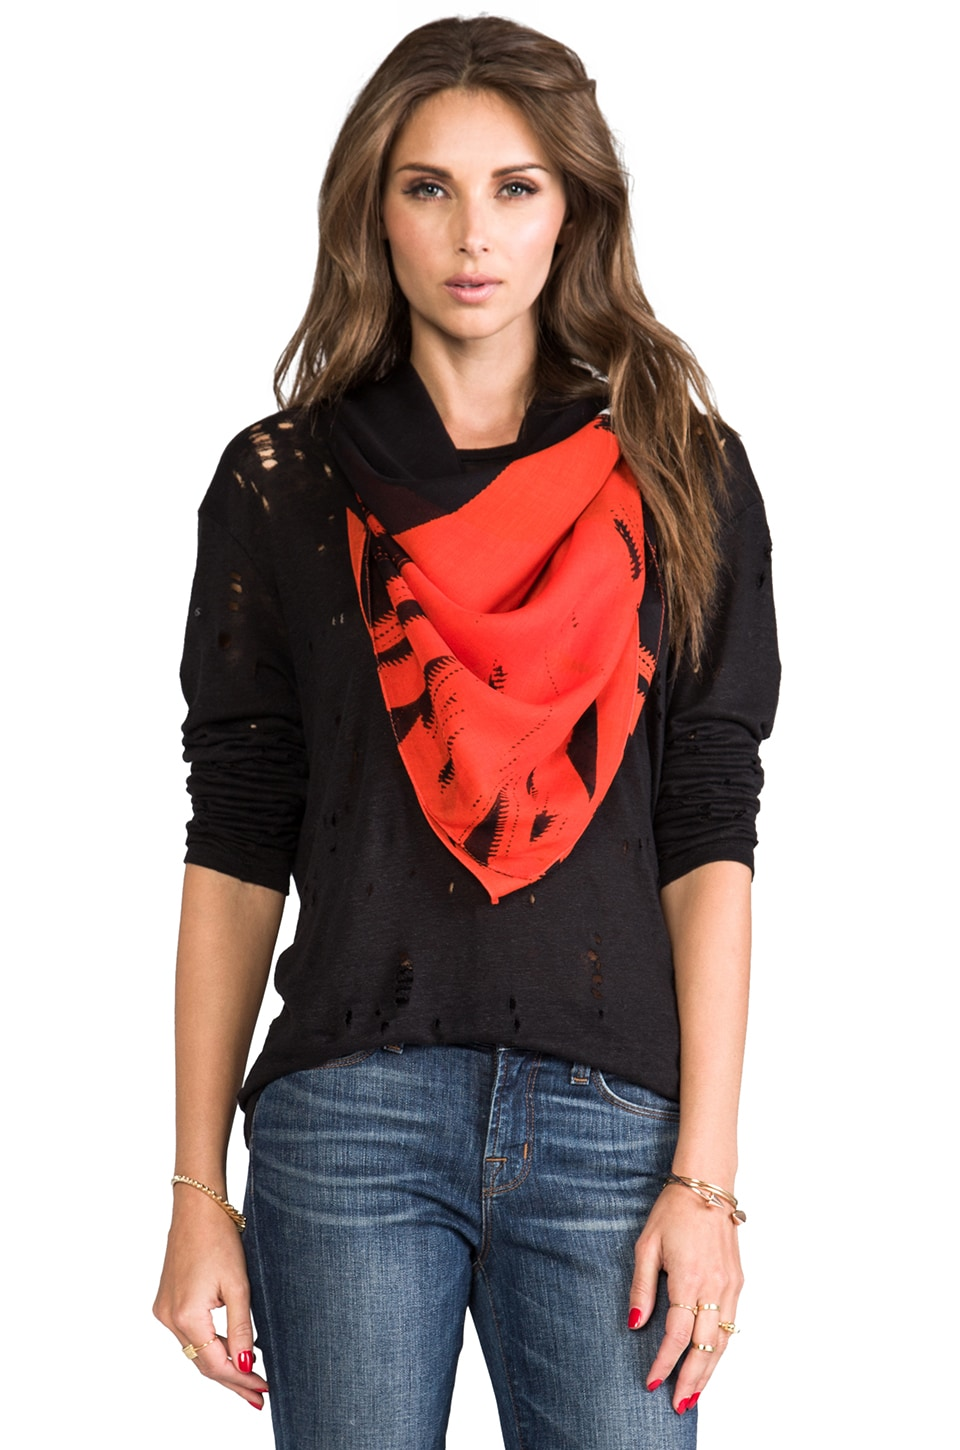 McQ Alexander McQueen Angry Eagle Scarf in Tangerine Orange